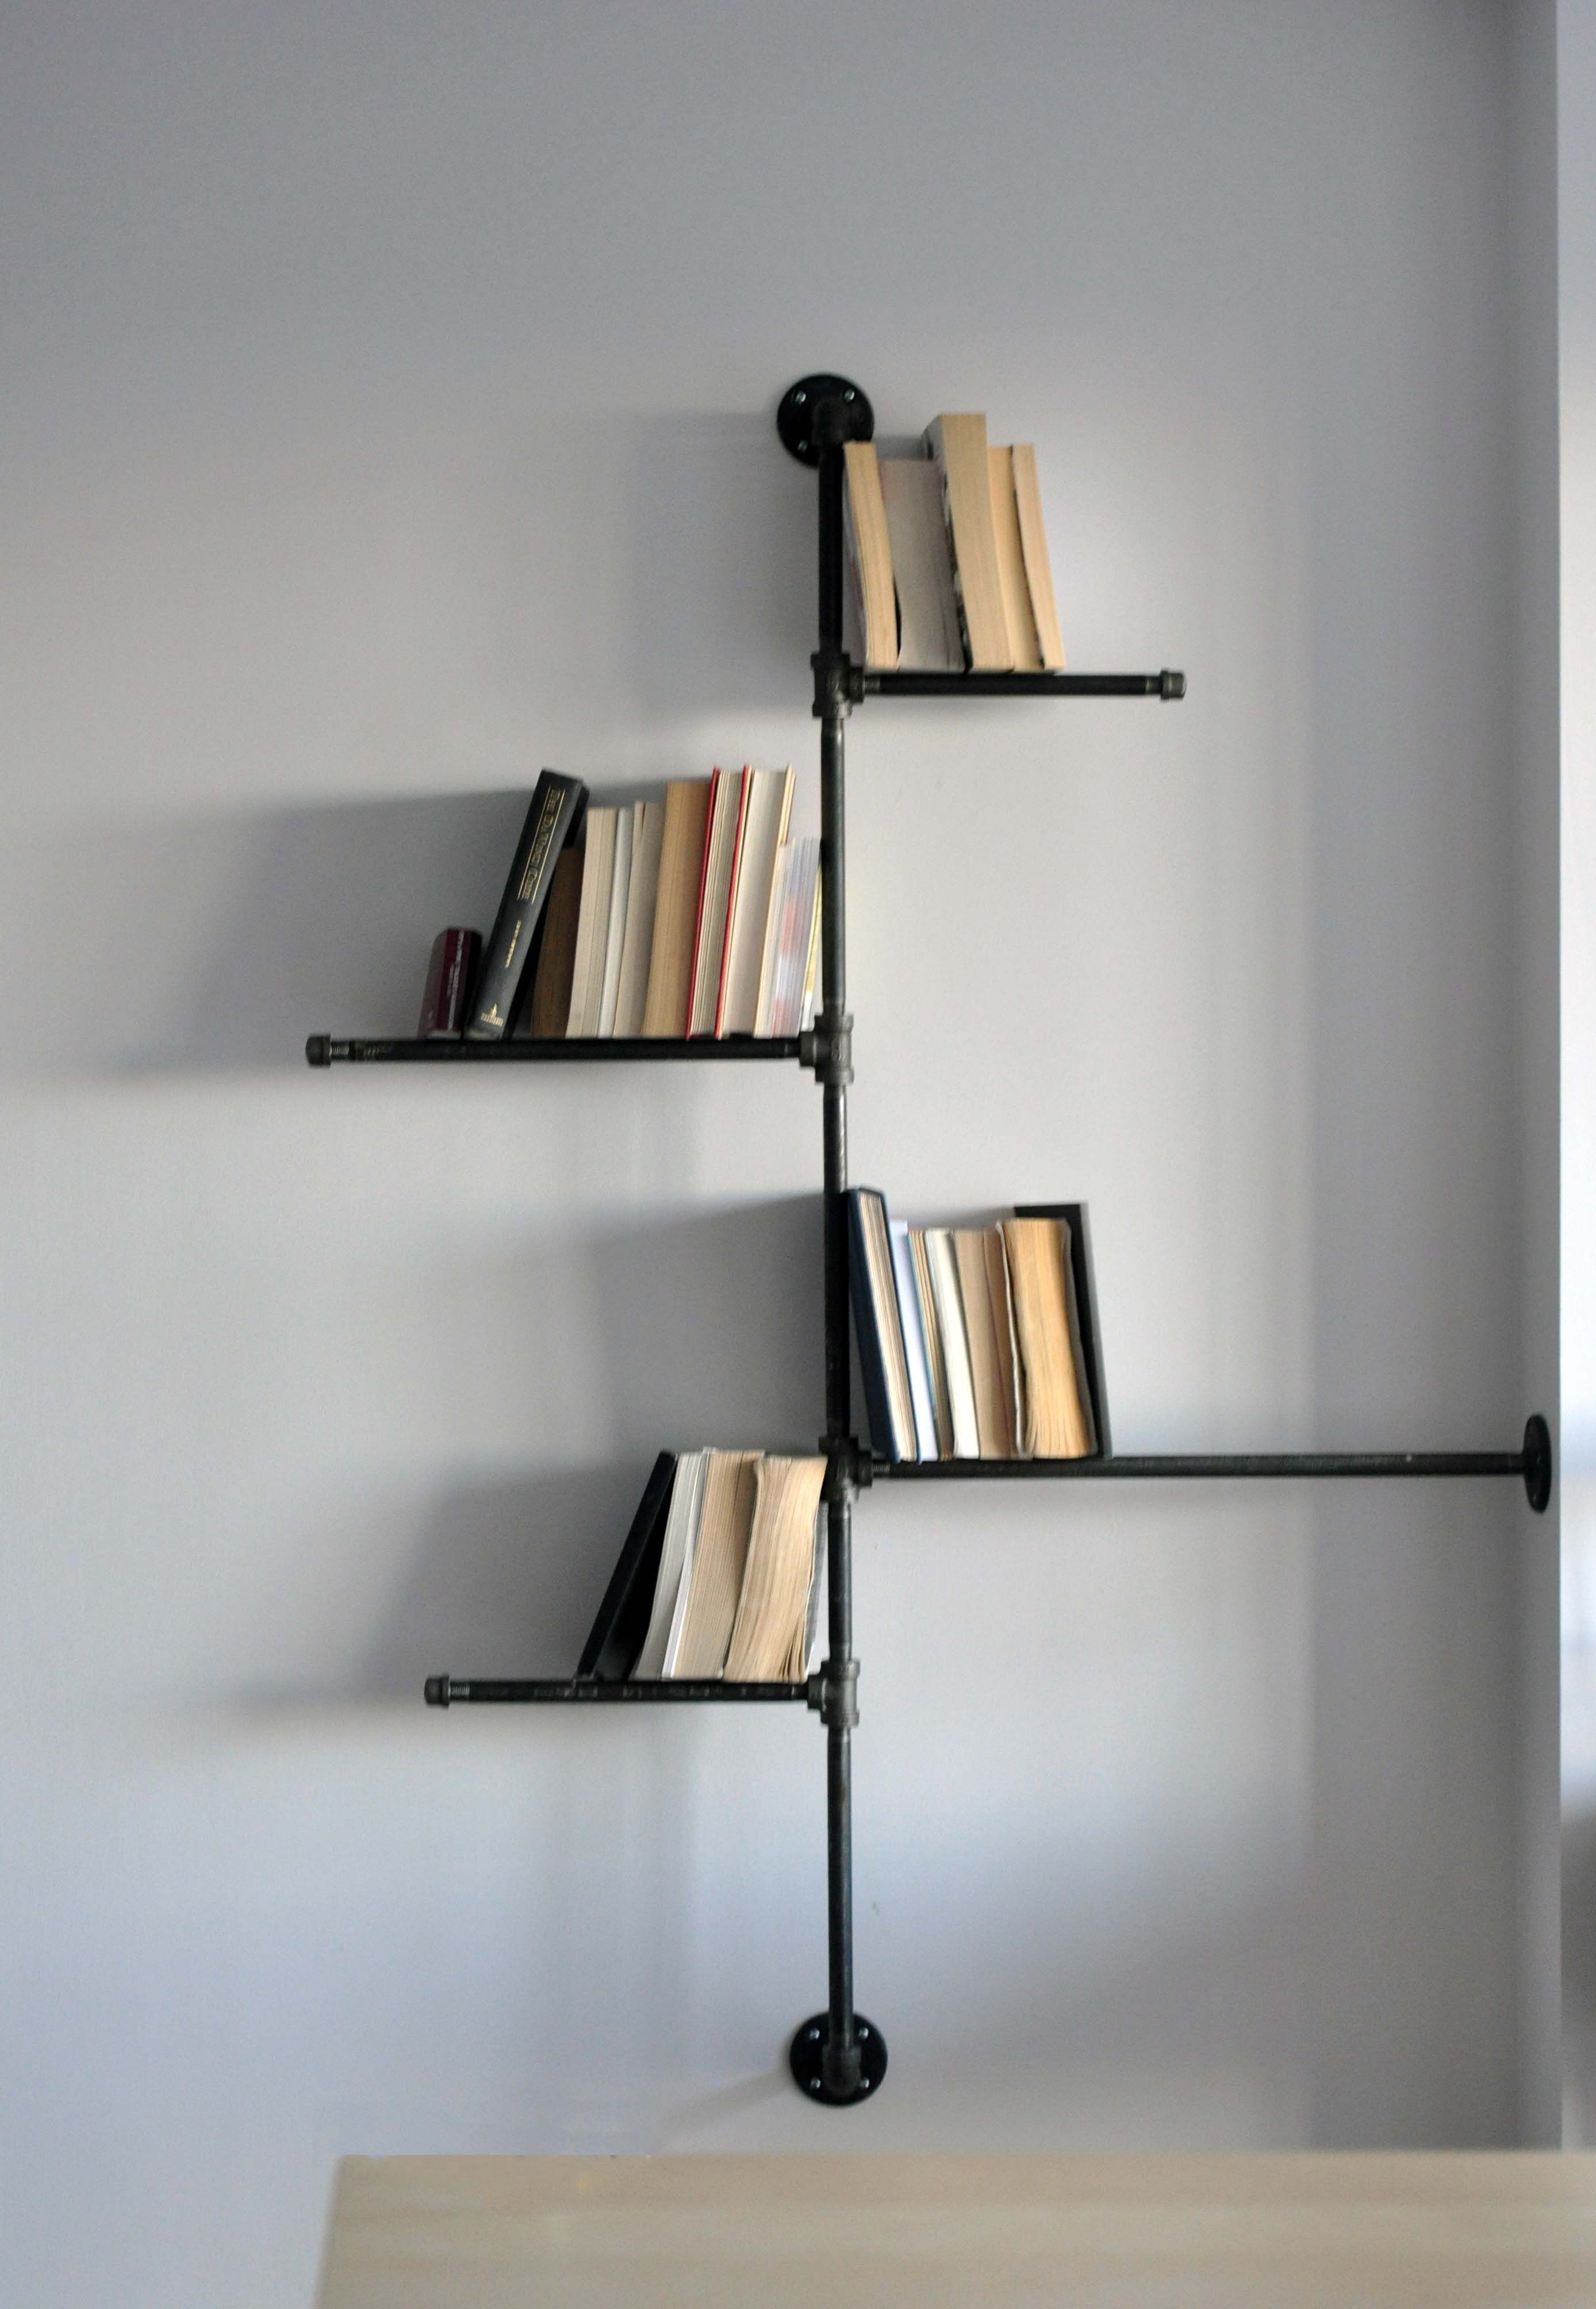 dining room easy ecellent wall hanging bookshelves using black color with line design mounted to white wall from wall mounted open shelves offering - Hanging Bookshelves